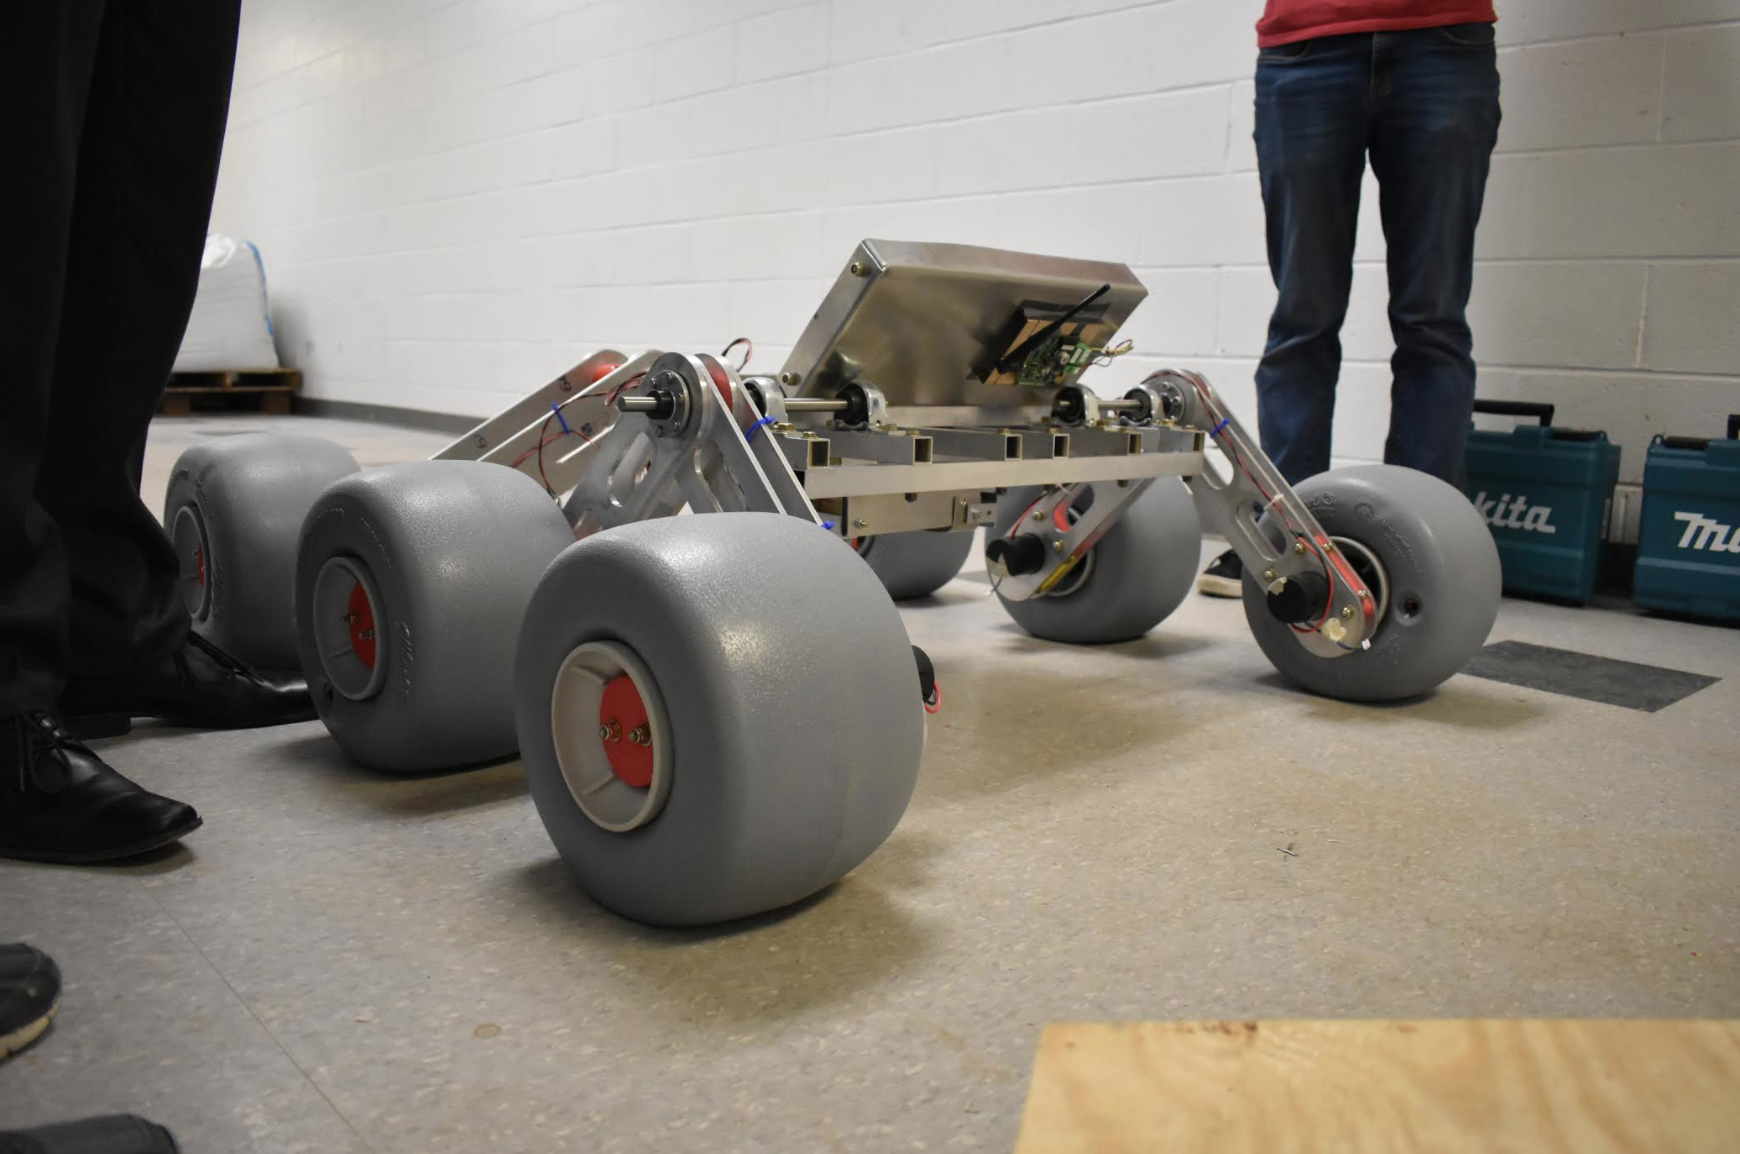 Robot Design Team competes to build rovers for Mars